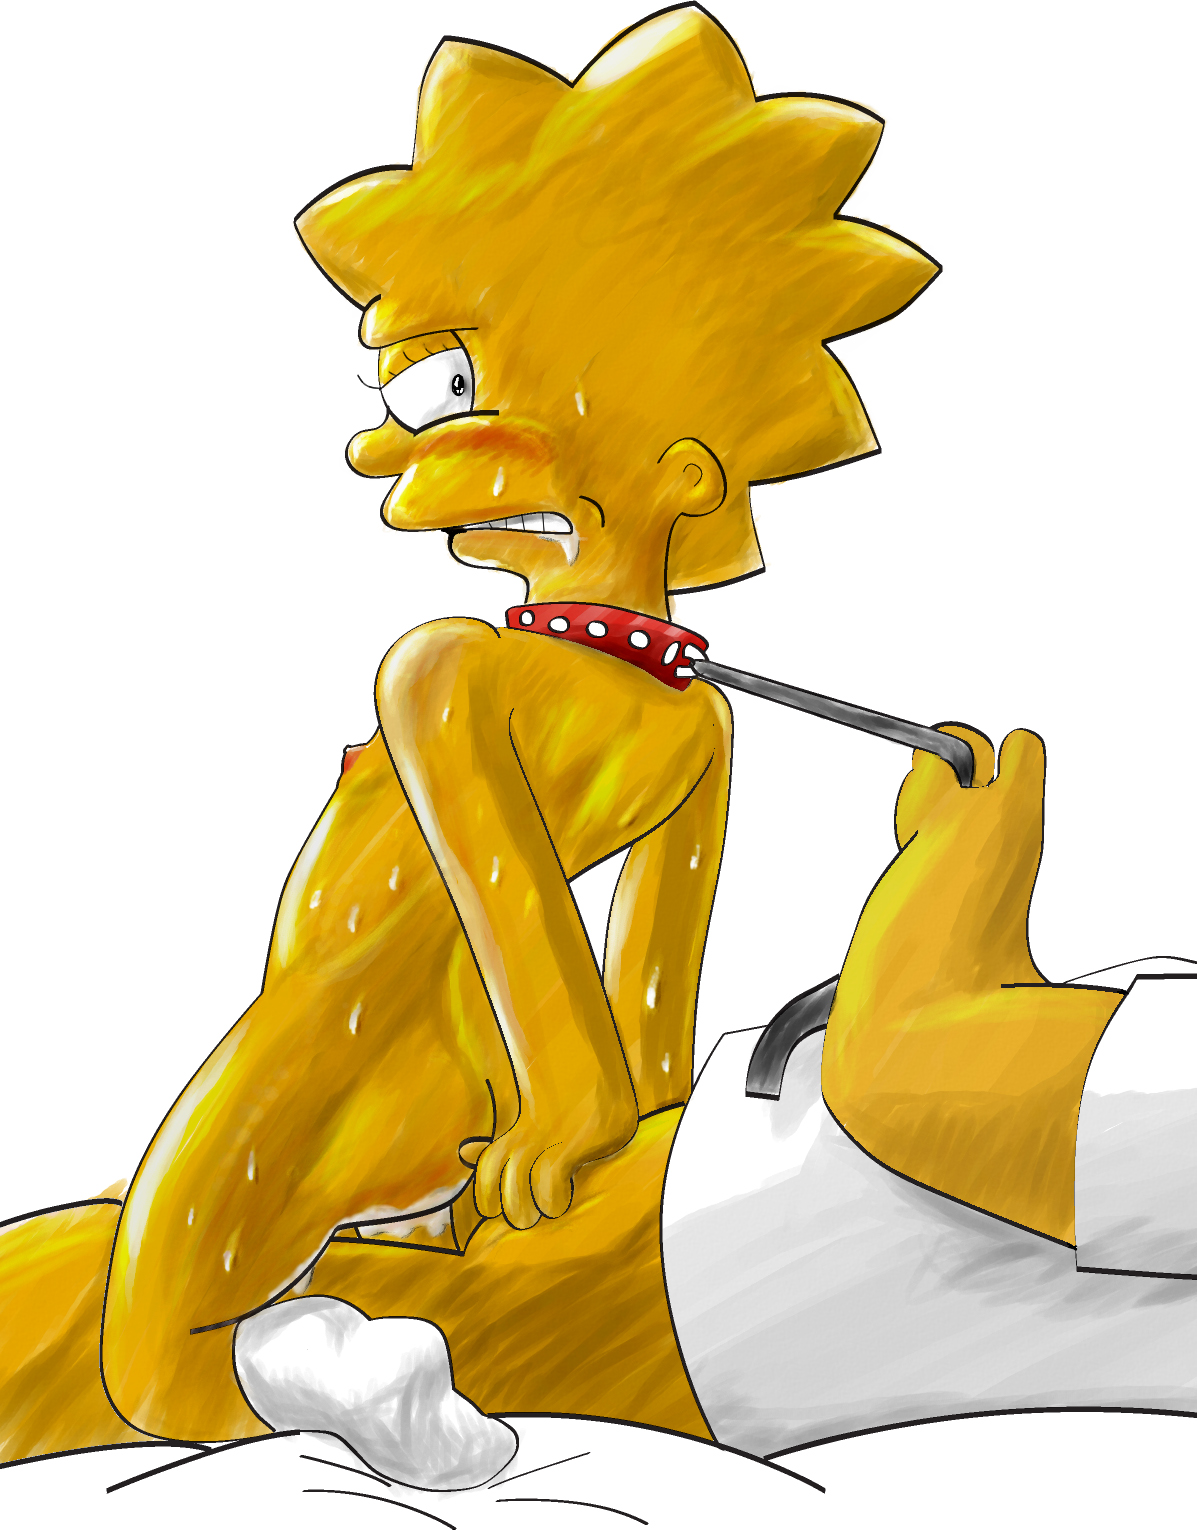 Simpsons hentai album lisa nsfw movie